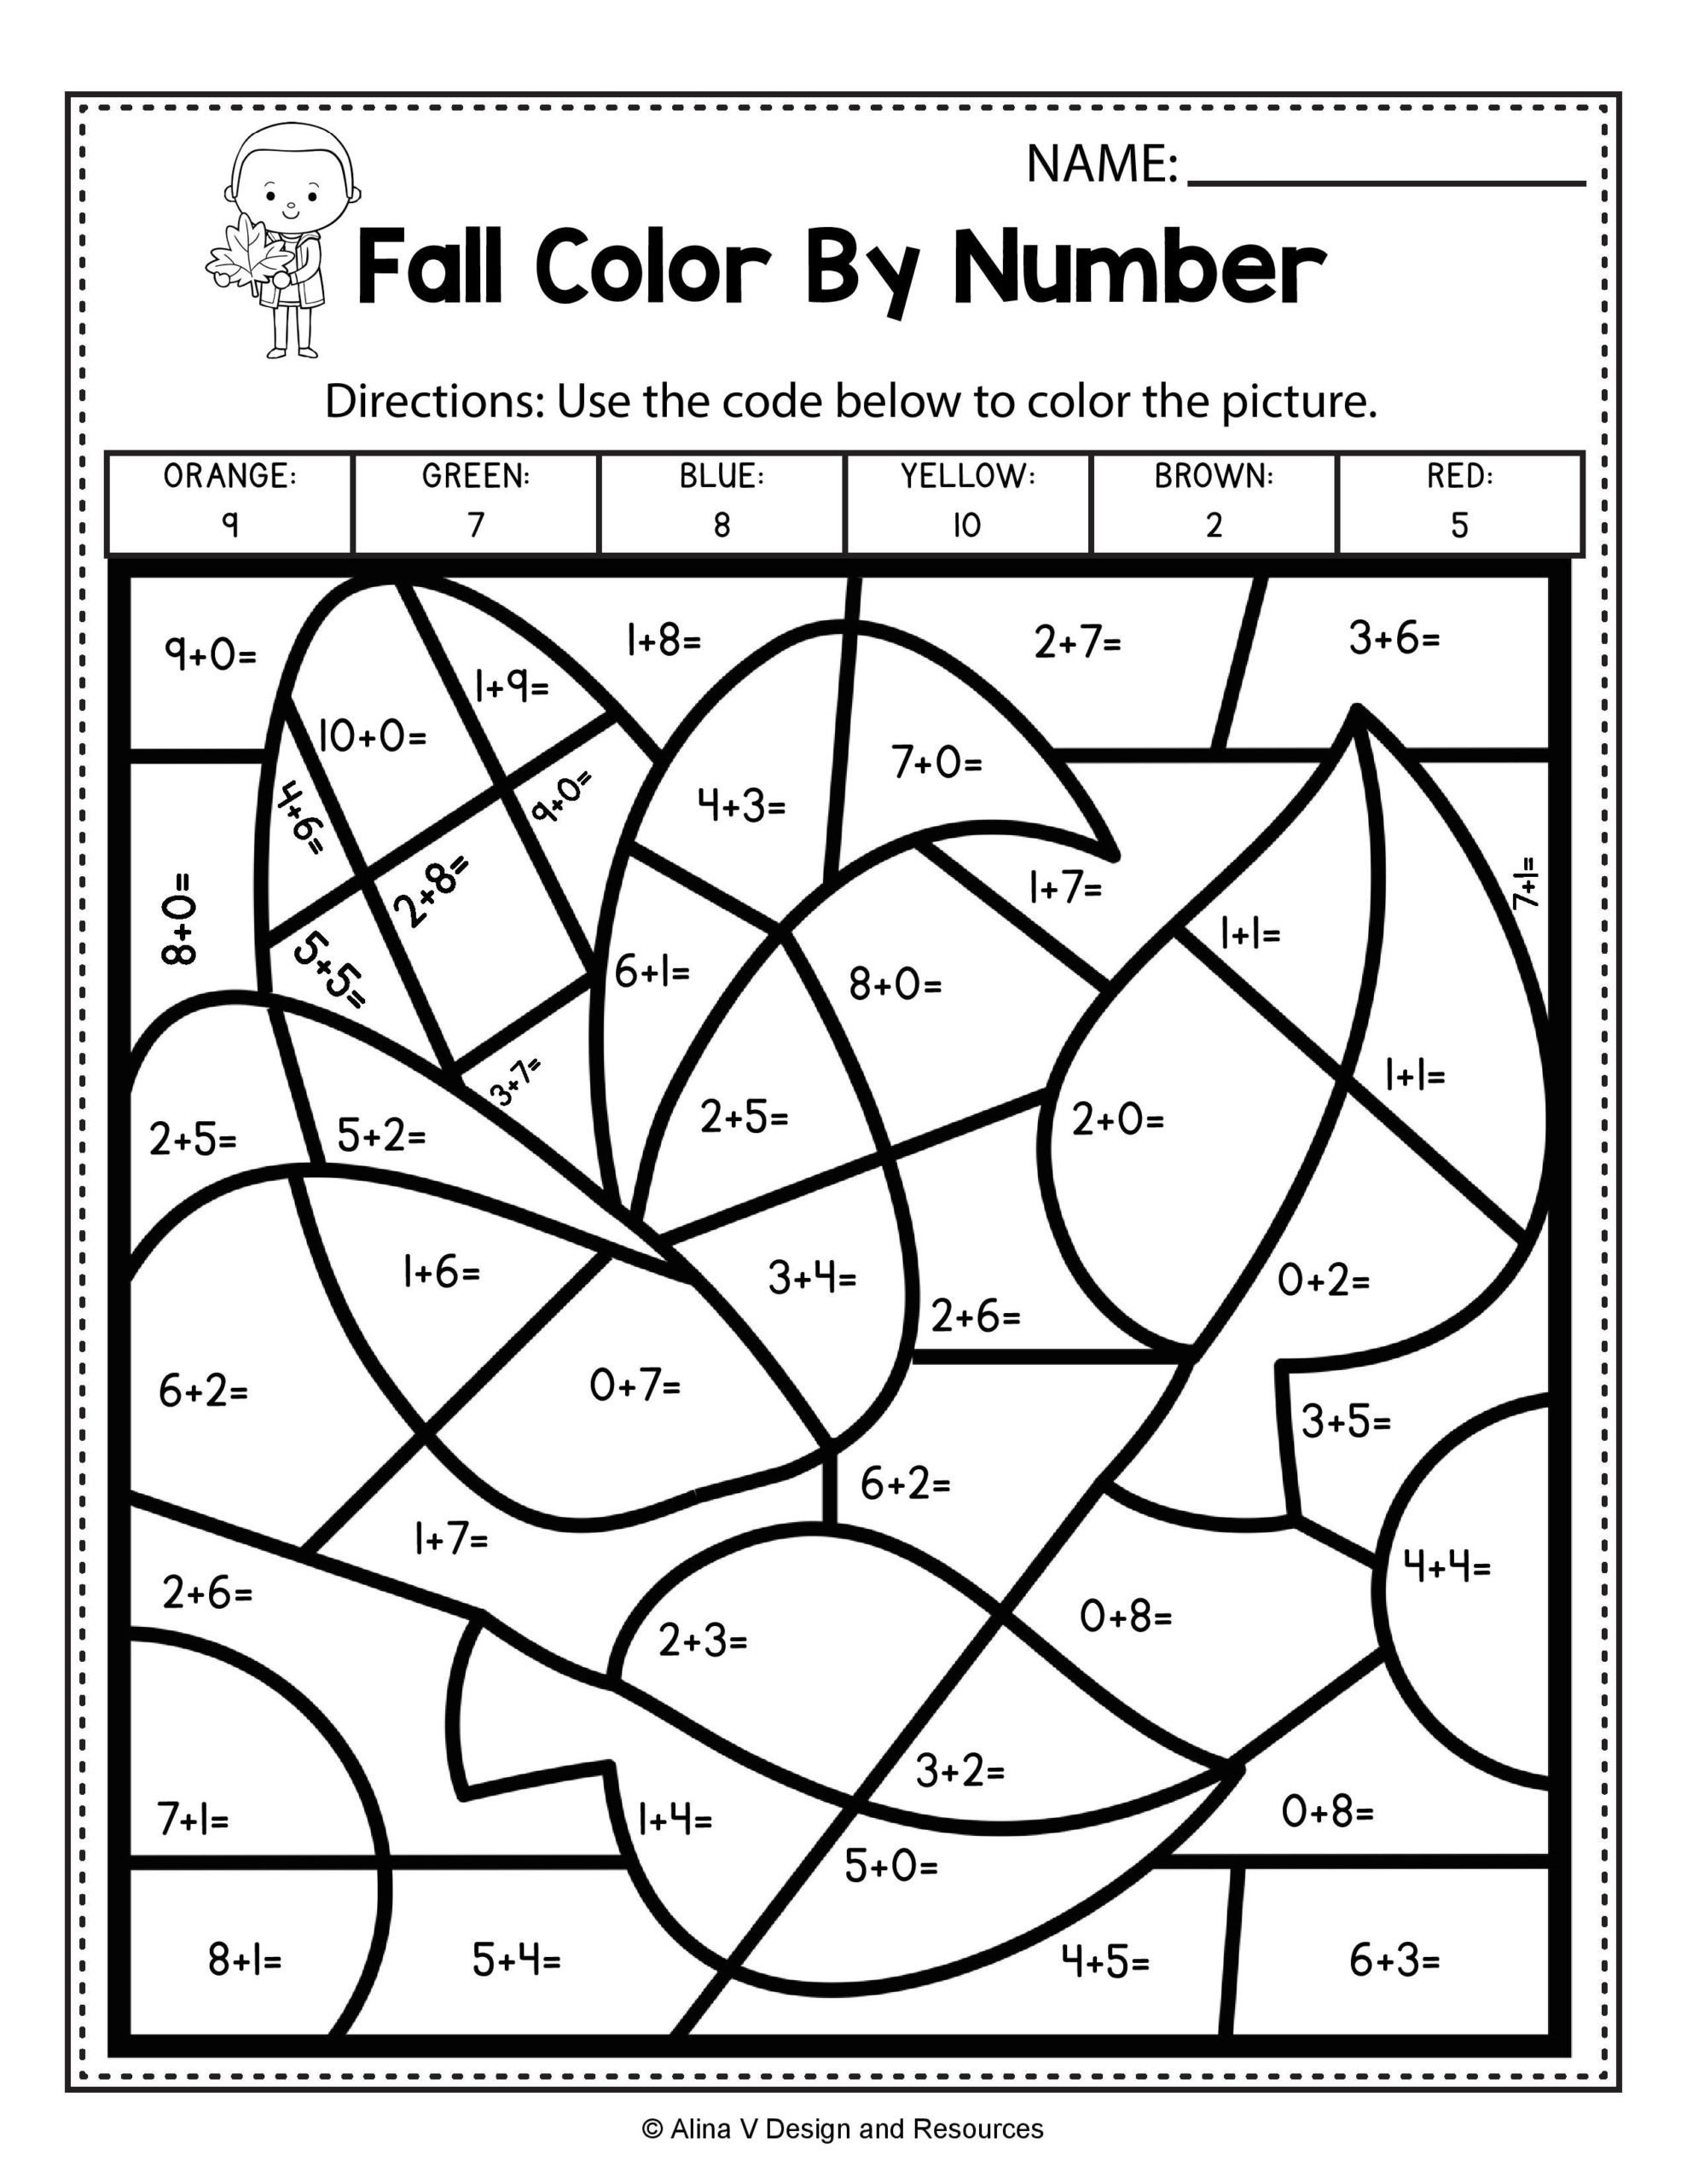 Fall Color by Number Worksheets Math Worksheet Simple Addition Color by Number Fall Math